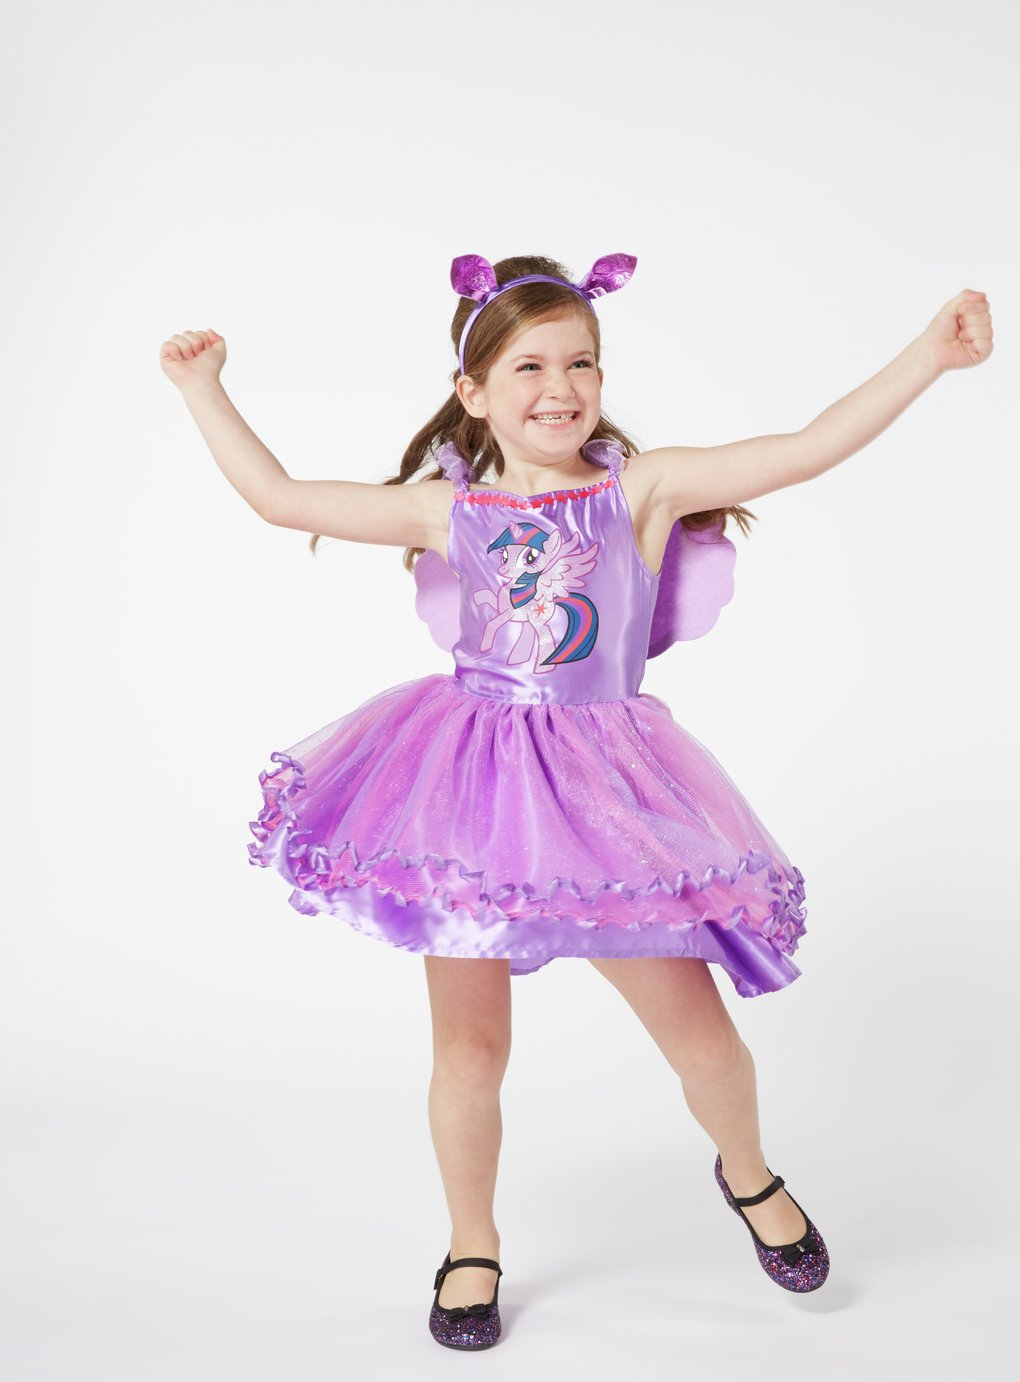 My Little Pony Twilight Sparkle Dress Up Costume - 5-6 Years